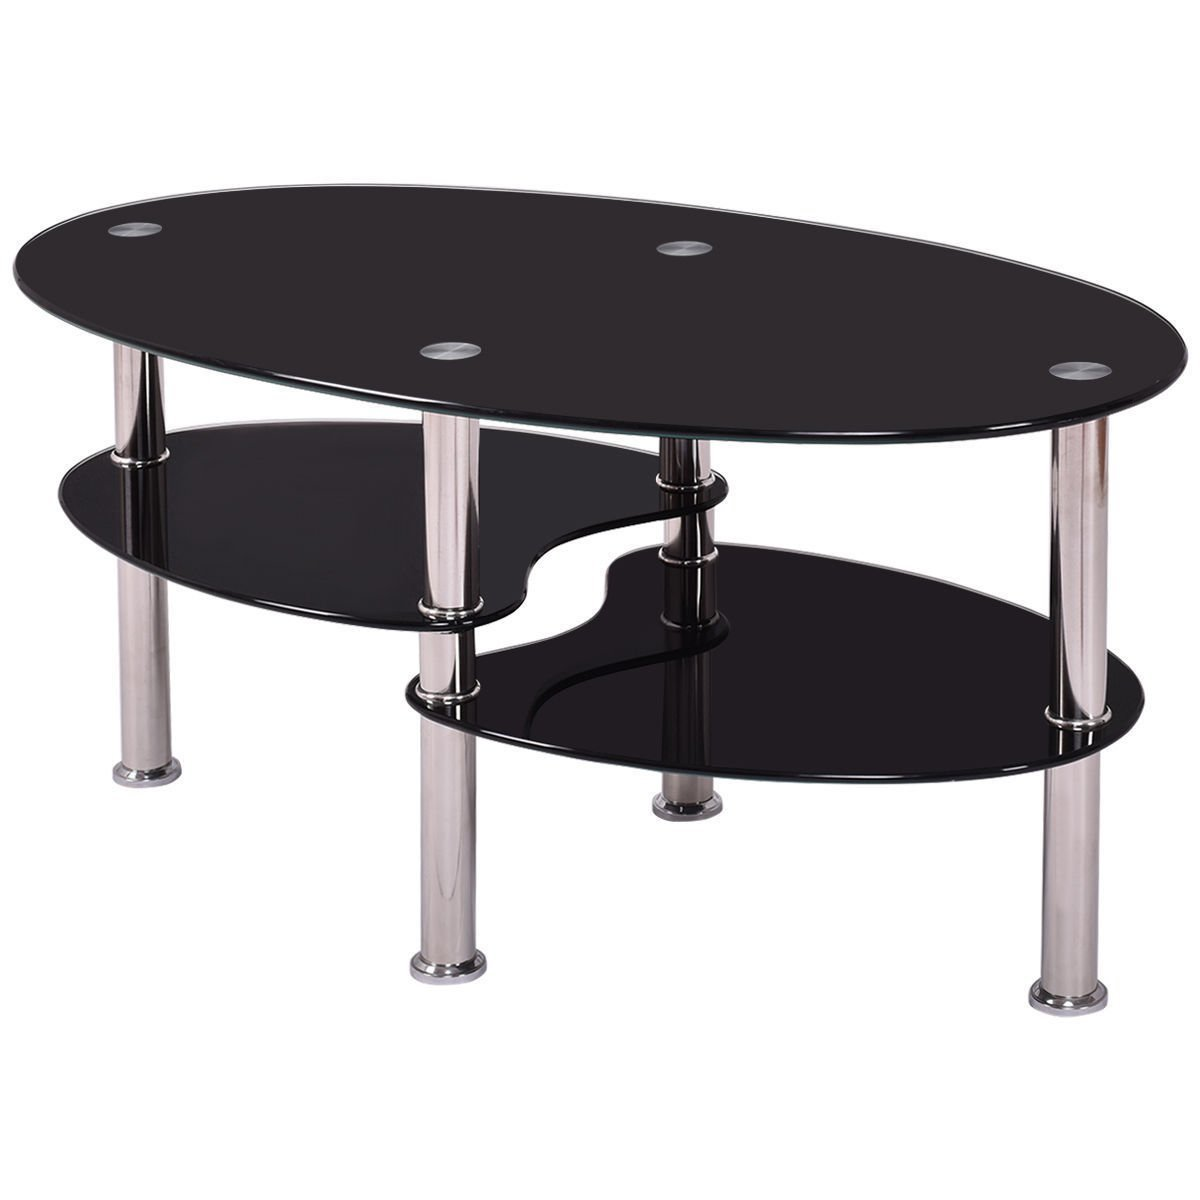 Tempered Glass Oval Side Coffee Table Shelf Chrome Base Living Room Black New Ebay